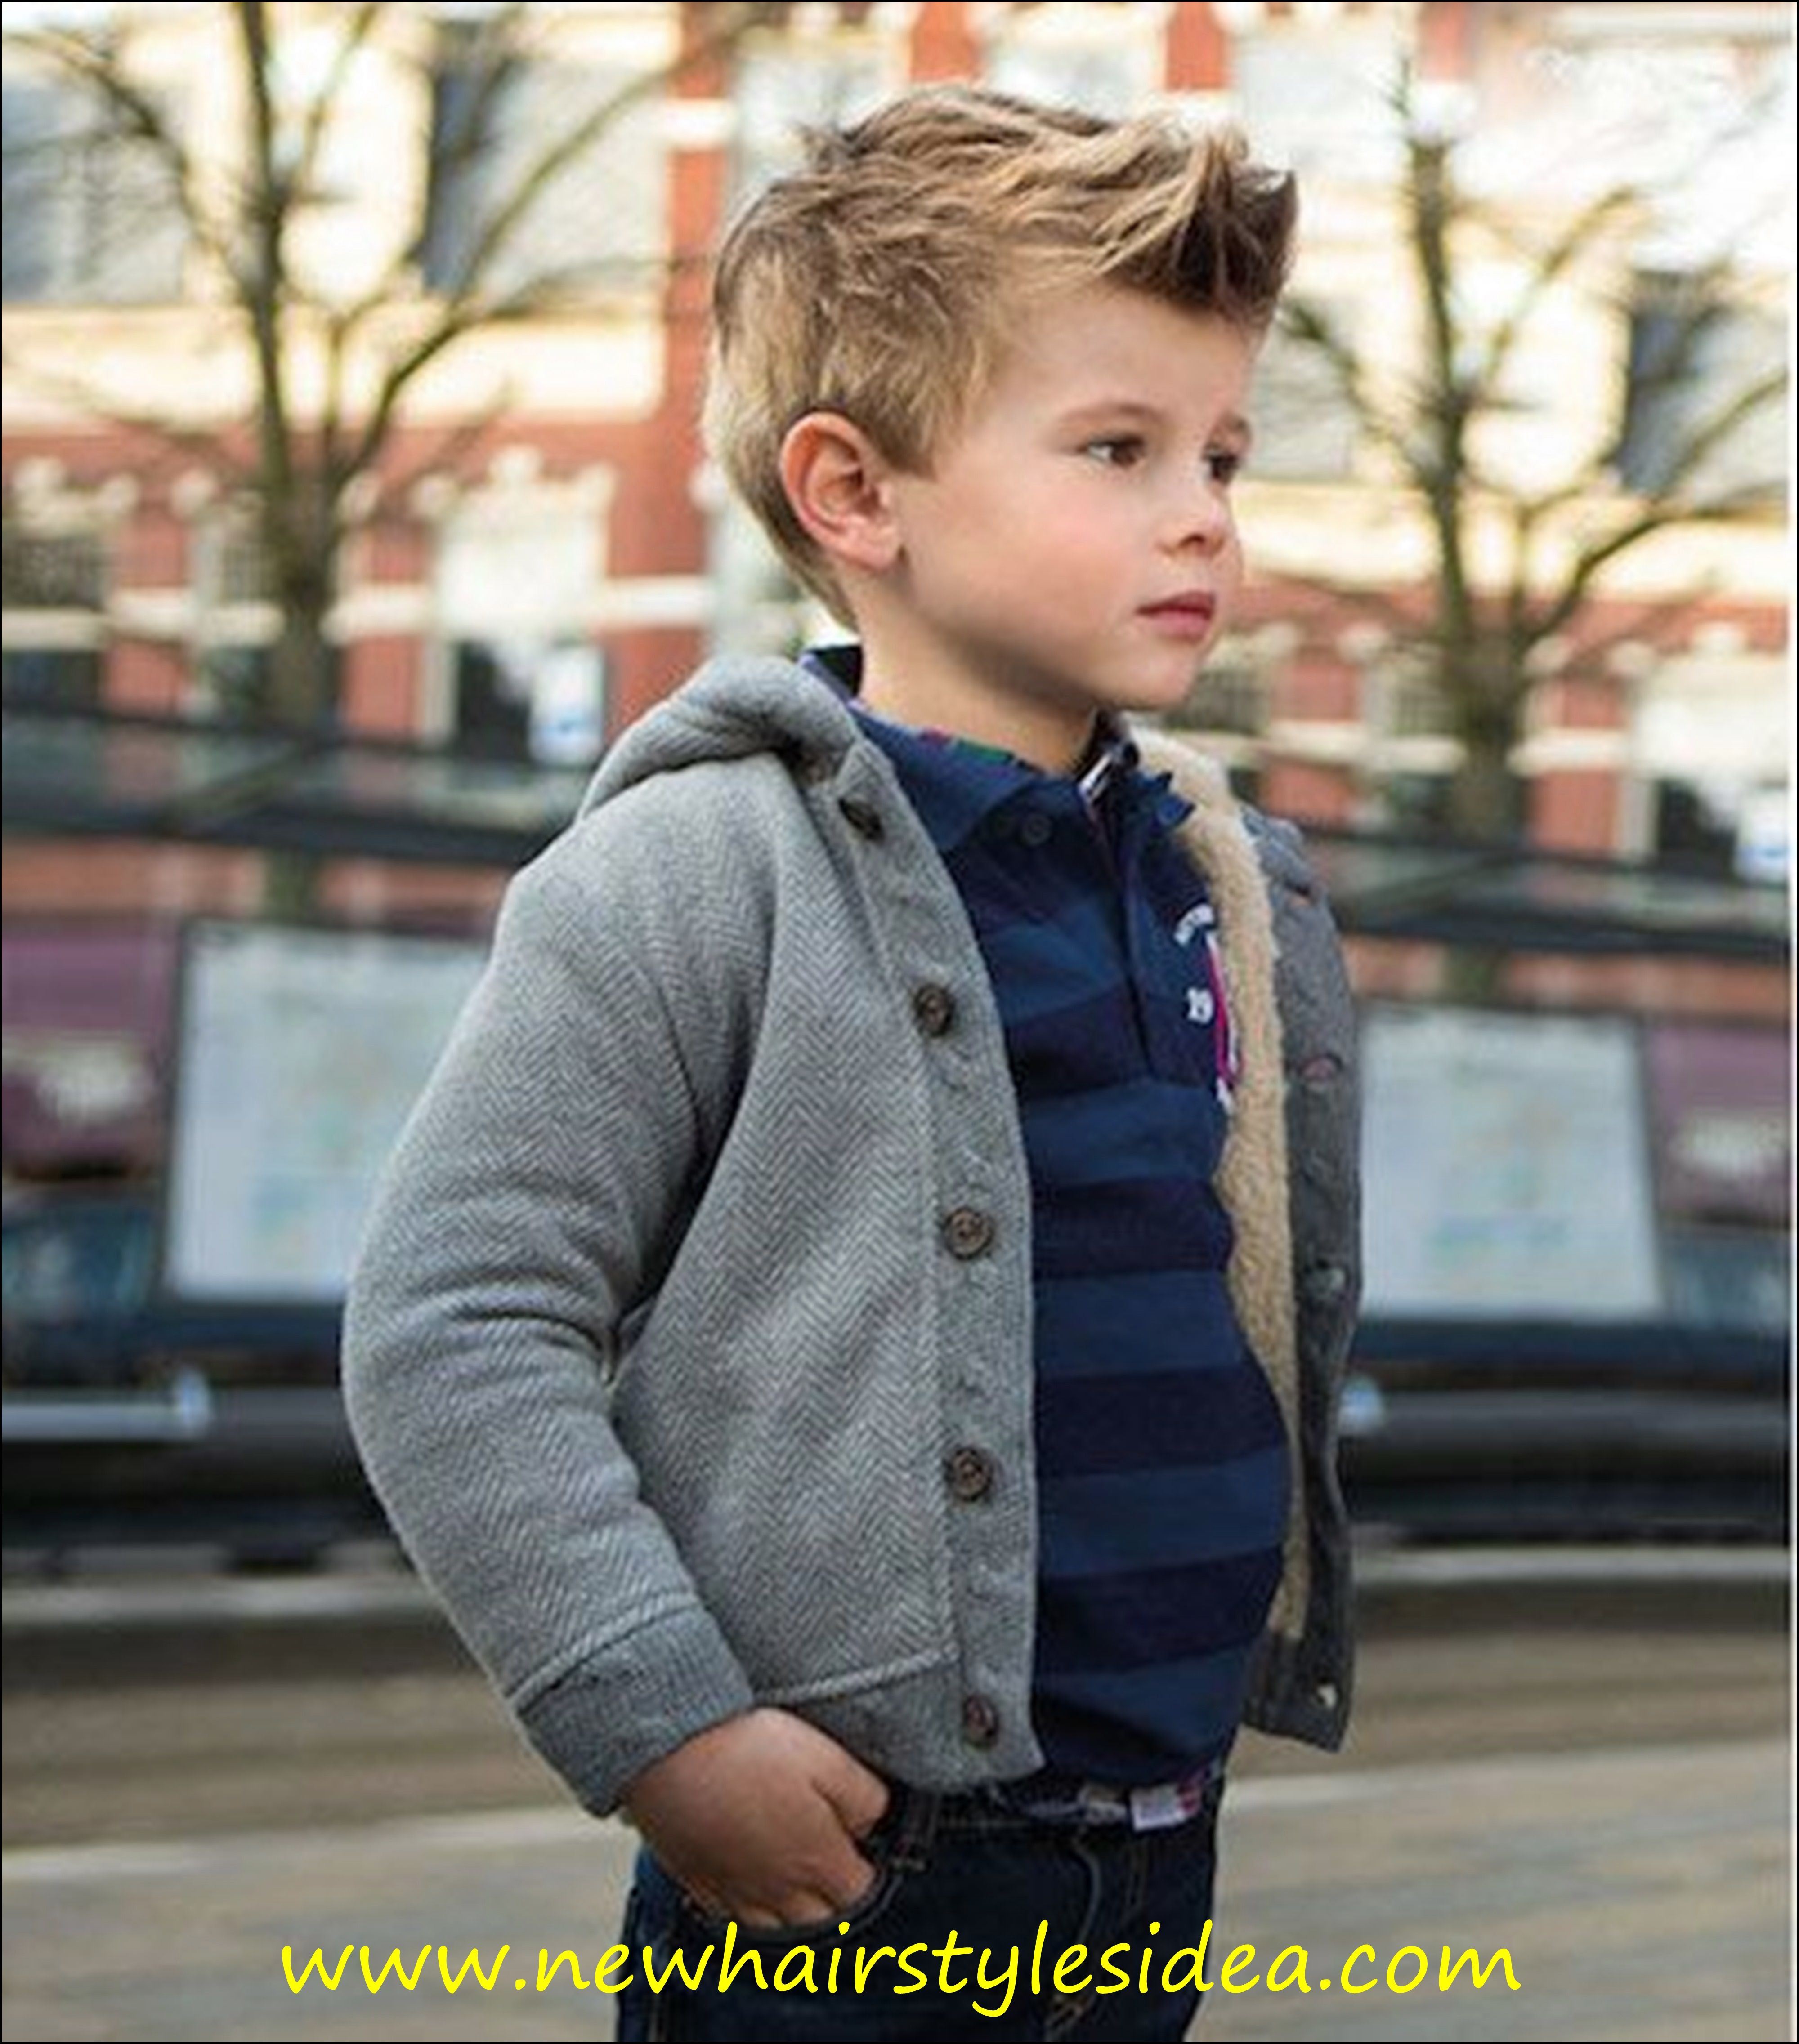 Awe Inspiring Incoming Search Terms New Hairstyle Boy 2016Best Hairstyle For Short Hairstyles Gunalazisus